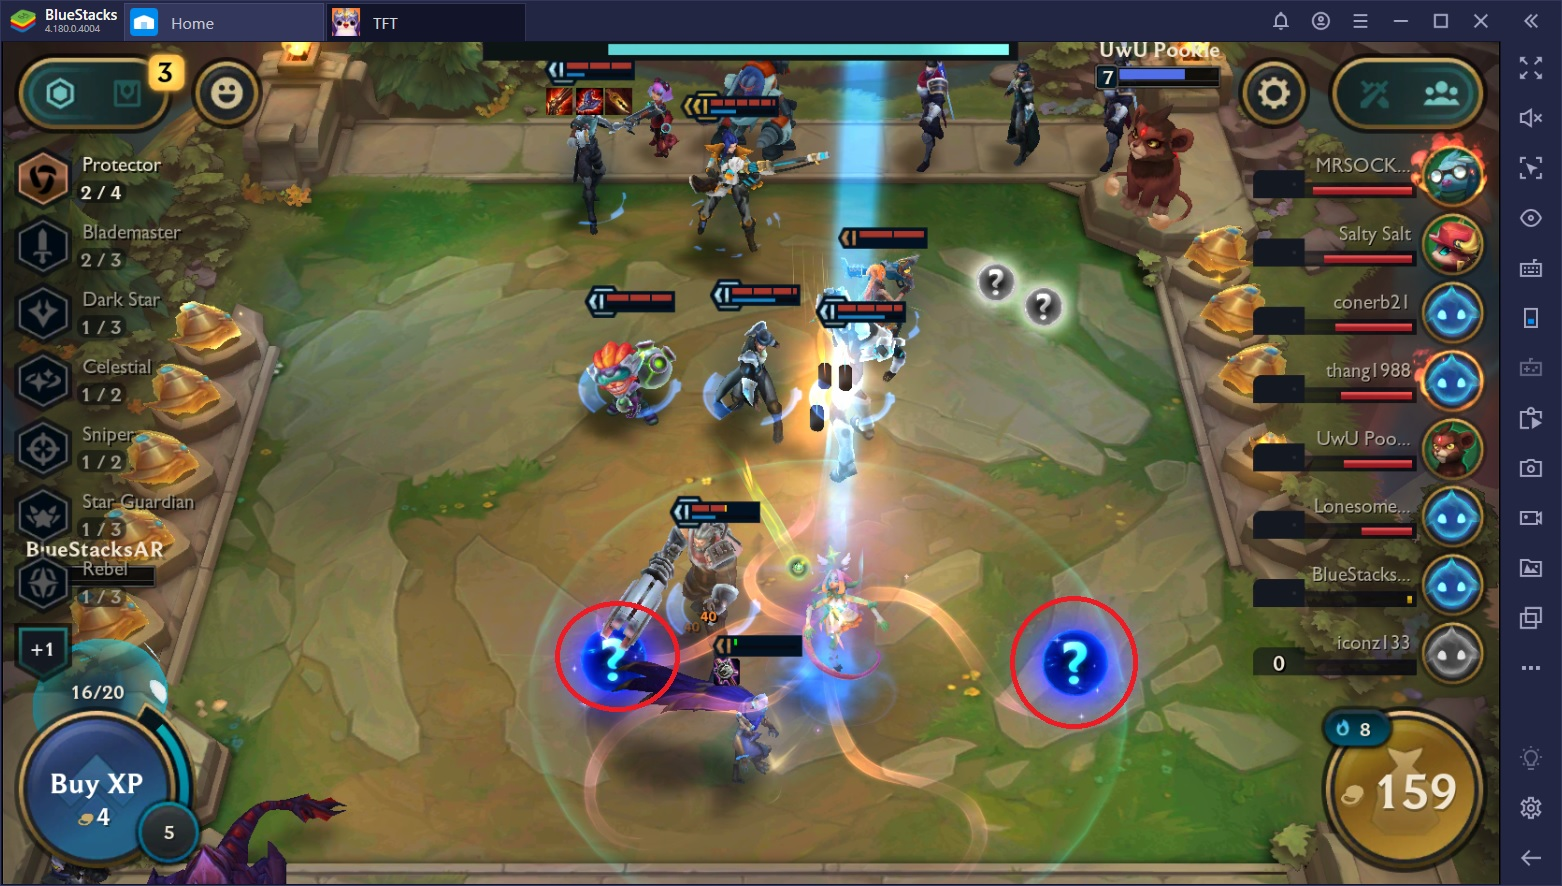 Teamfight Tactics on BlueStacks - The Best Tips and Tricks For Winning Every Match